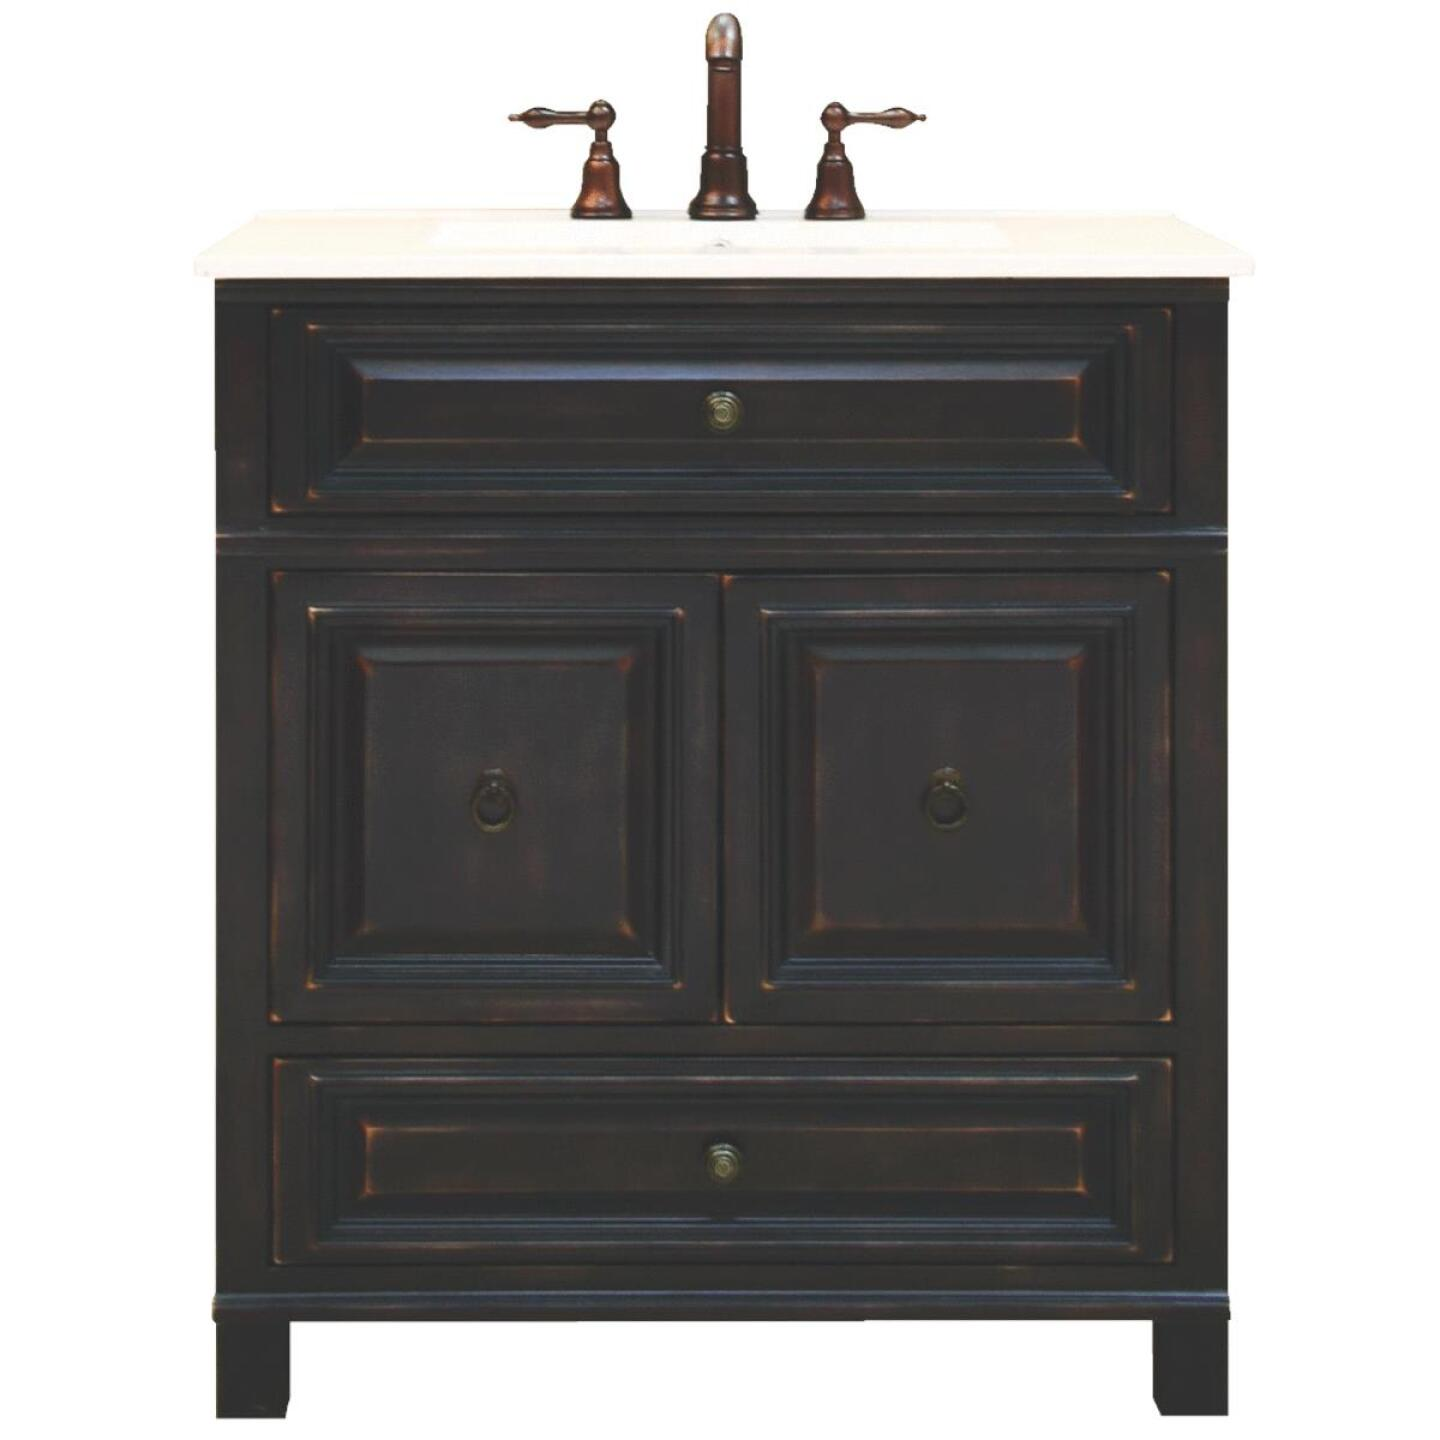 Sunny Wood Barton Hill Black Onyx 30 In. W x 34 In. H x 21 In. D Vanity Base, 2 Door/1 Drawer Image 208